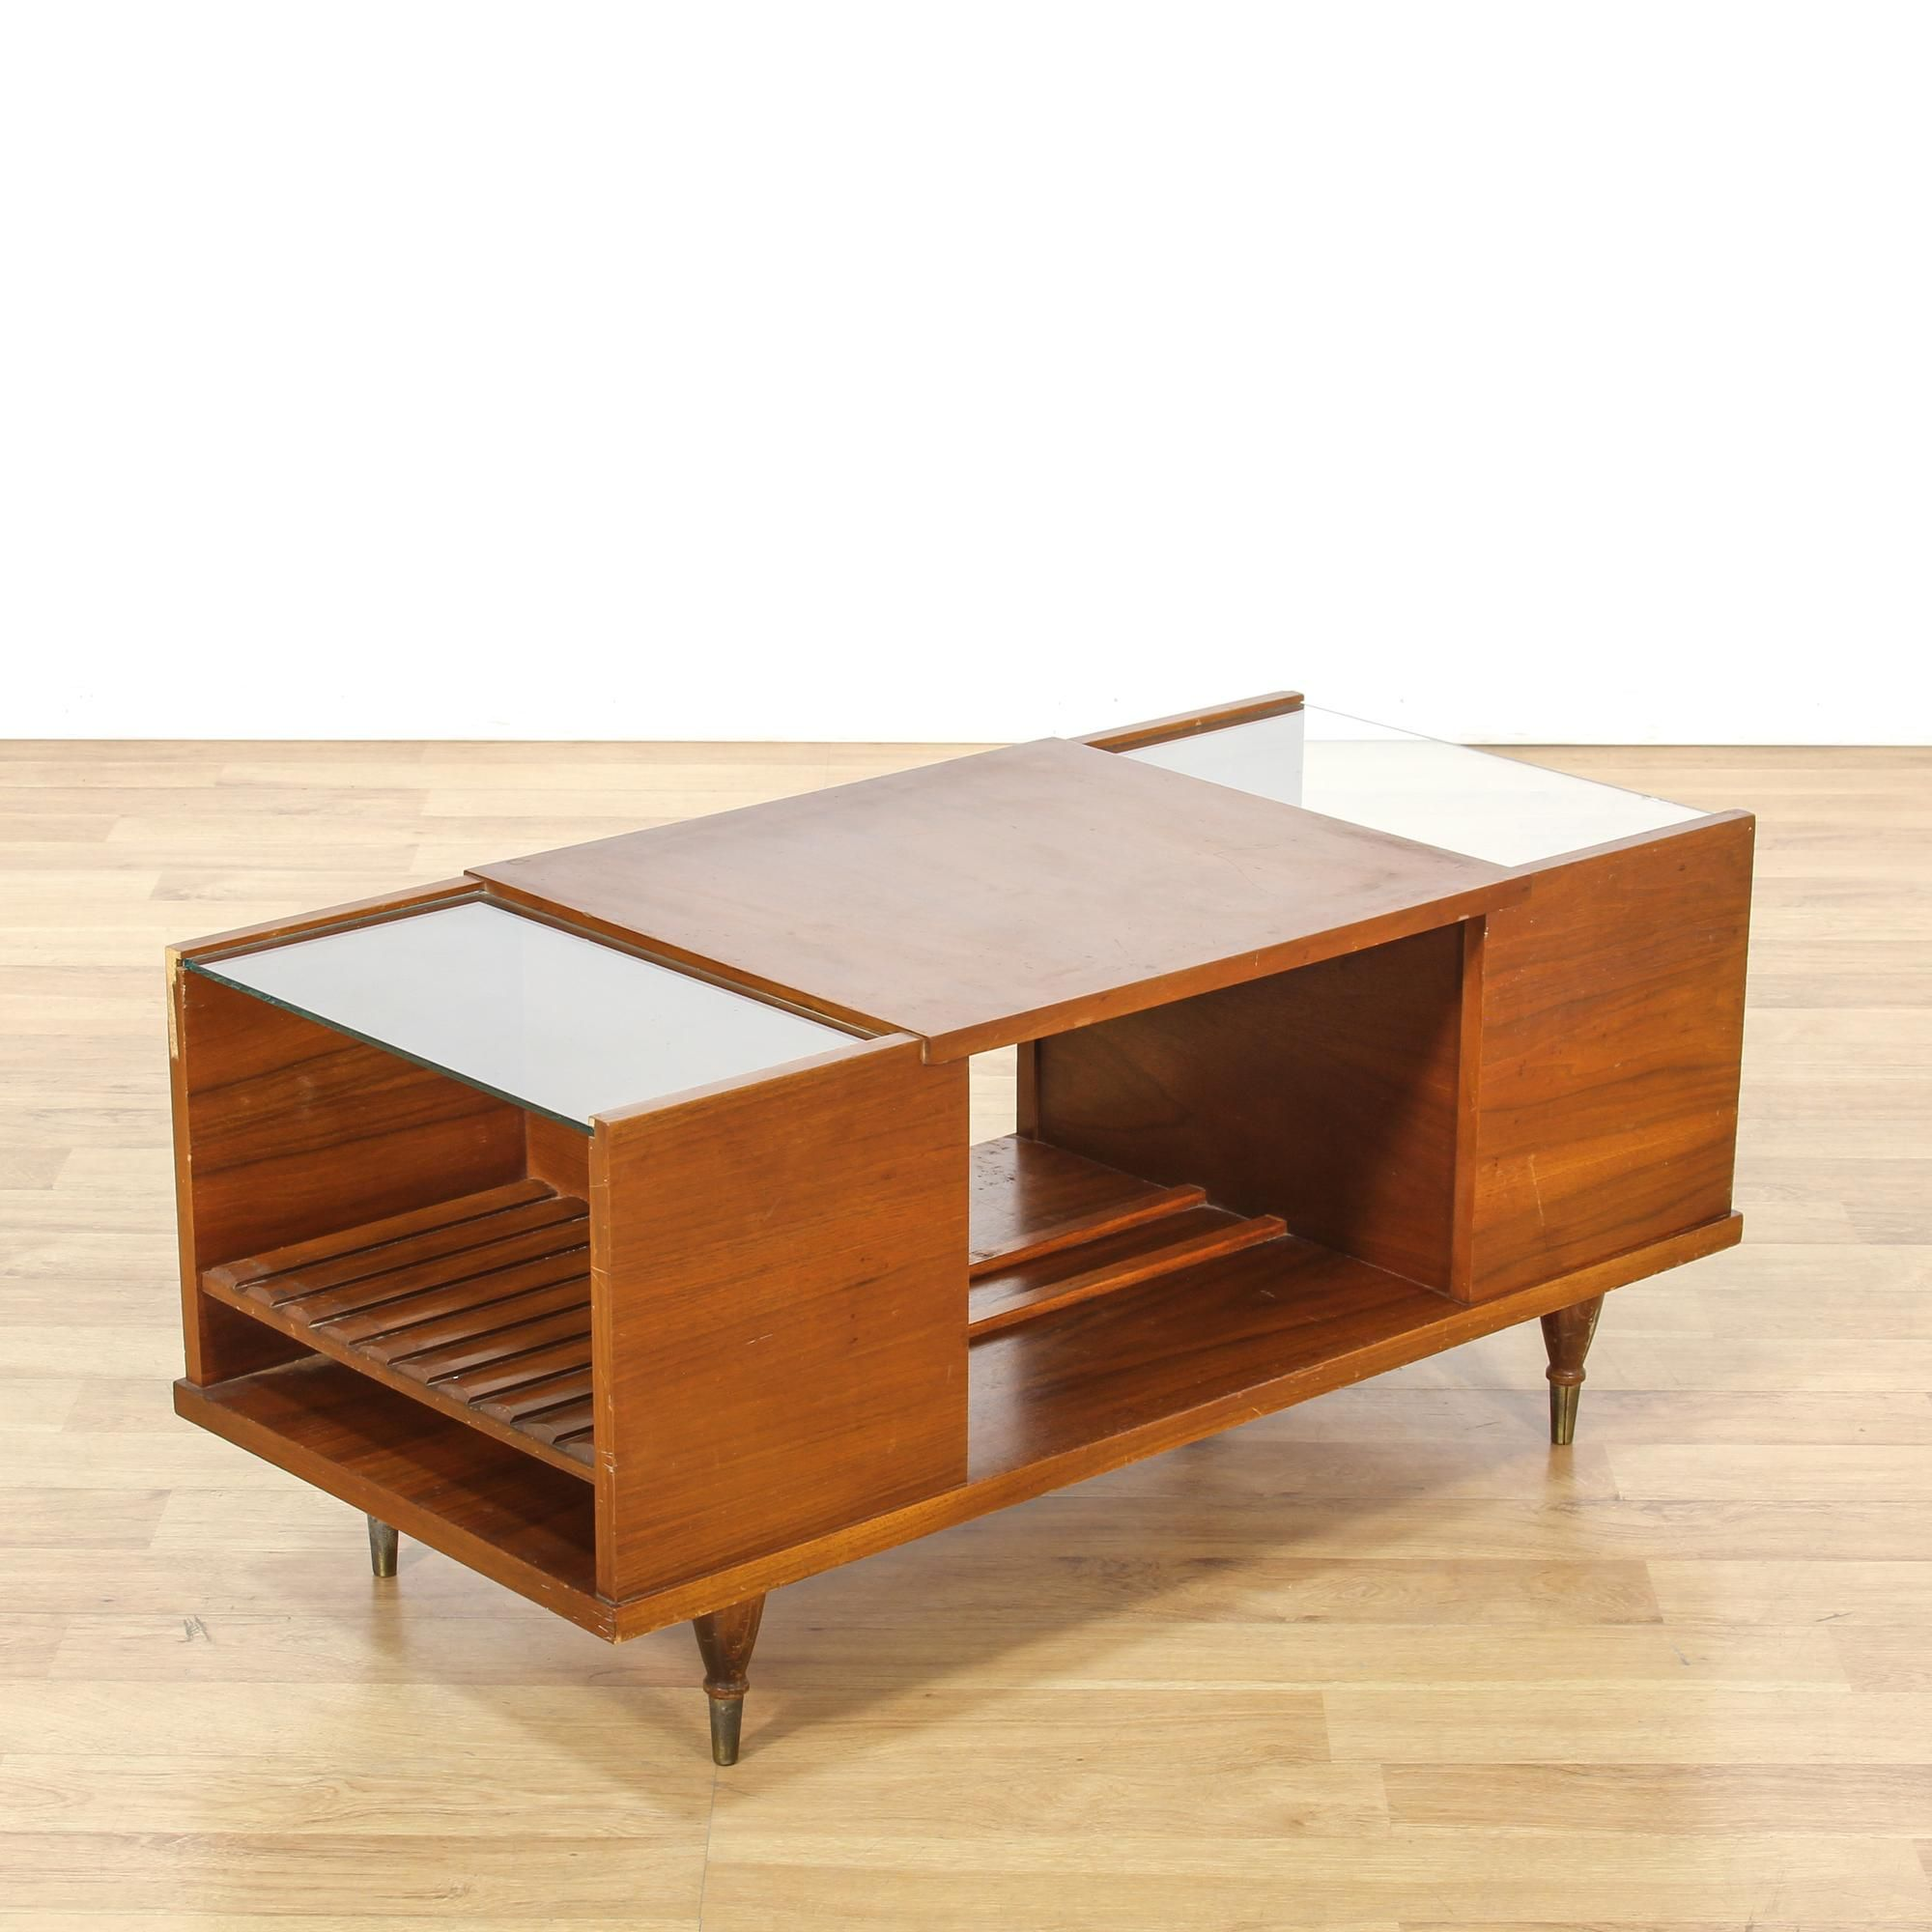 This Mid Century Modern Coffee Table Is Featured In A Solid Wood With A Glossy Teak Finish Th Coffee Table Mid Century Modern Coffee Table Unique Coffee Table